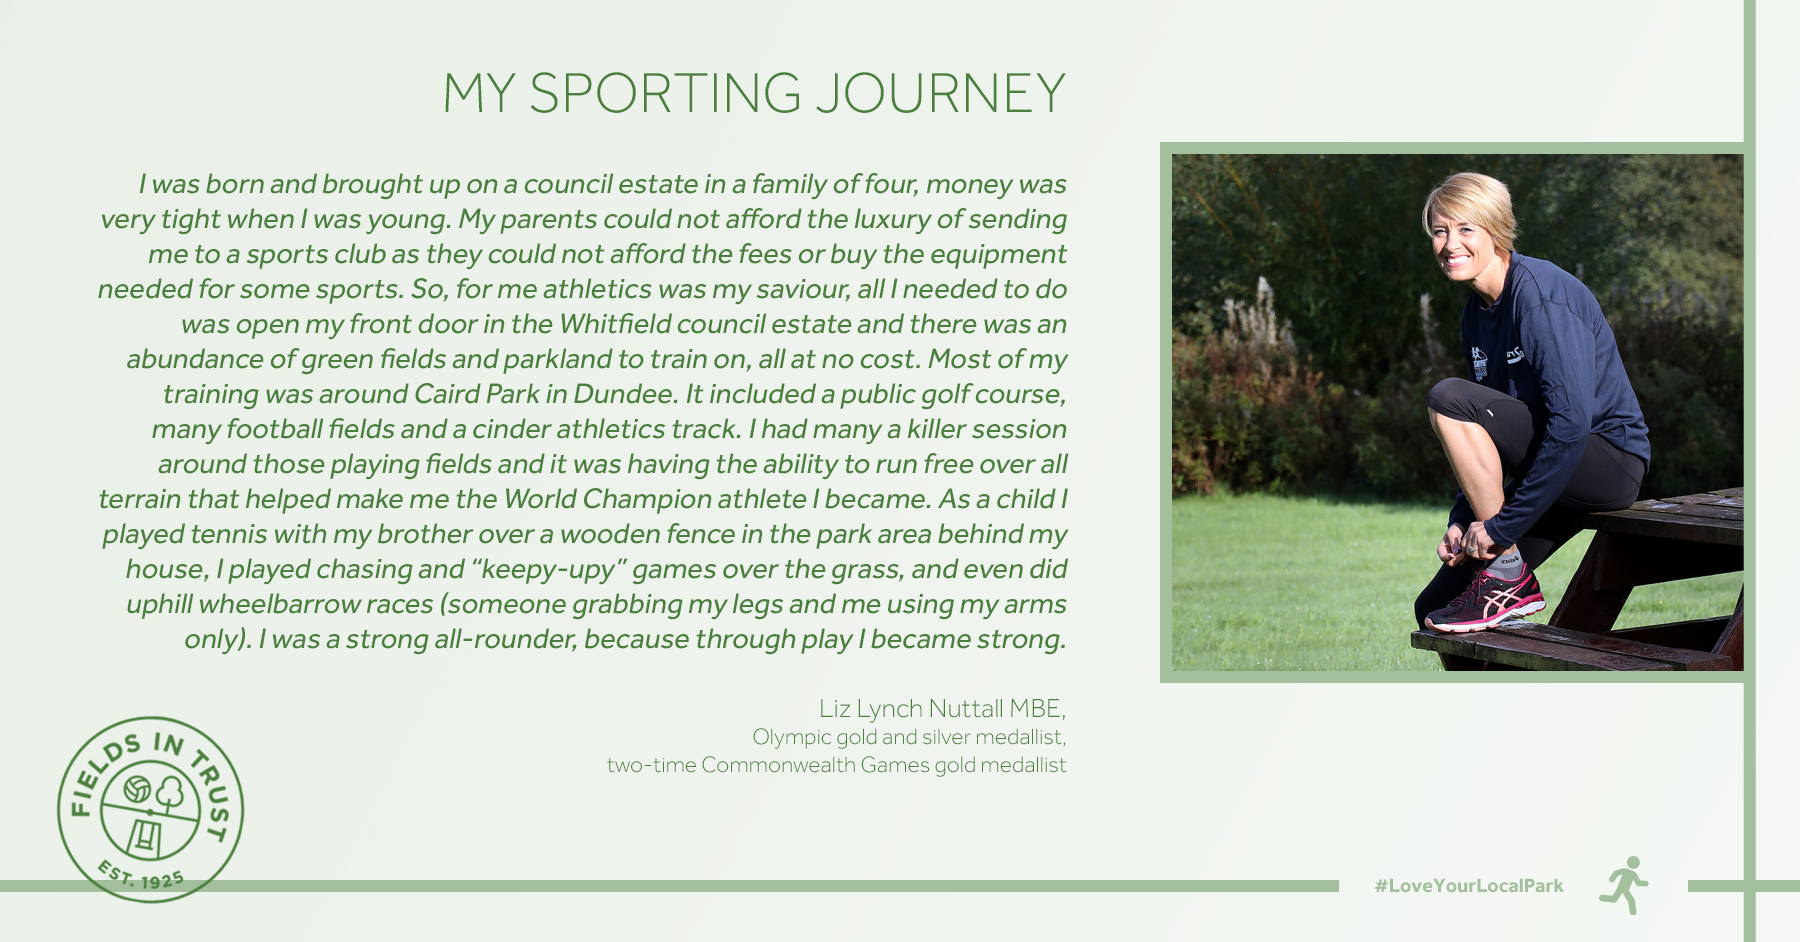 My Sporting Journey